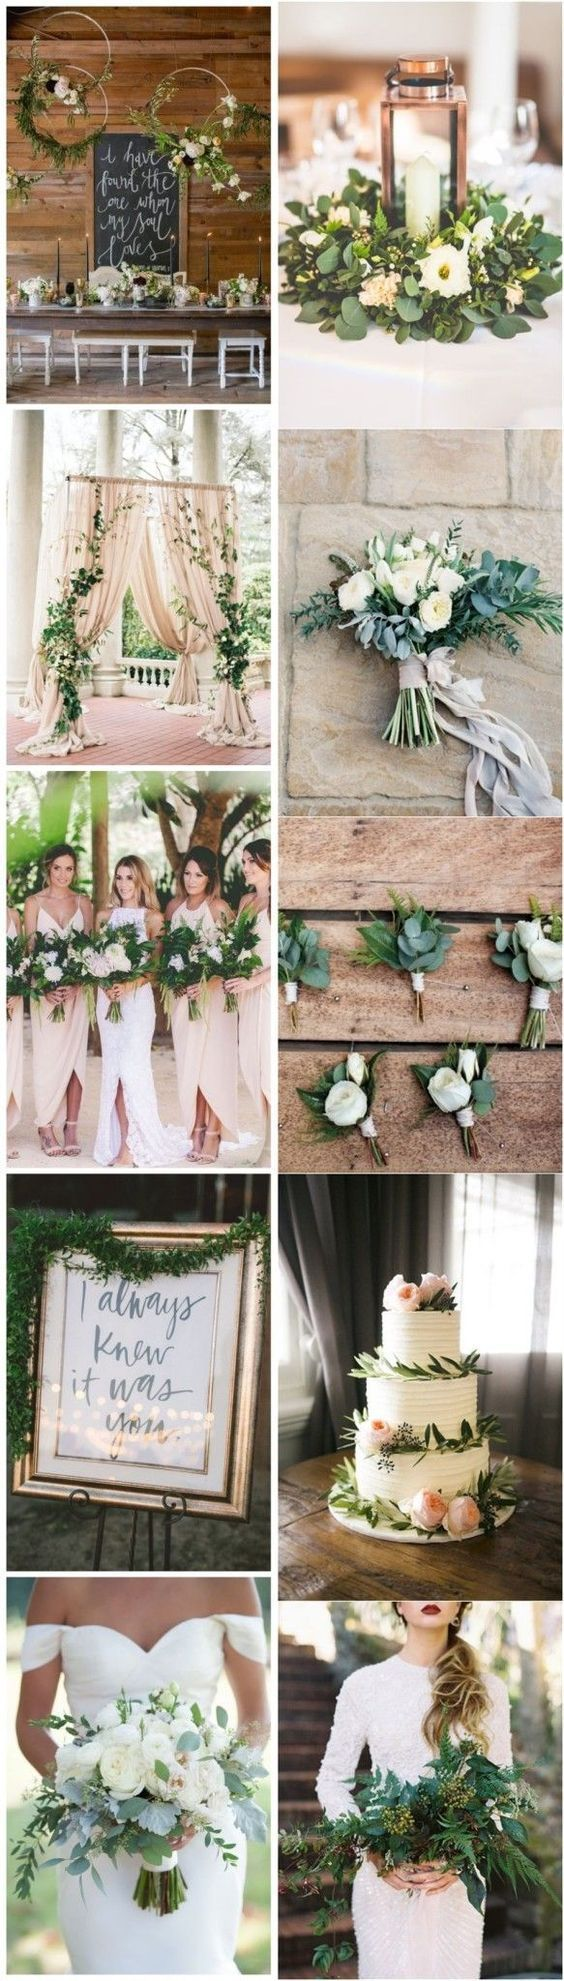 2017 Spring Wedding Color and Ideas | Spring wedding colors ...